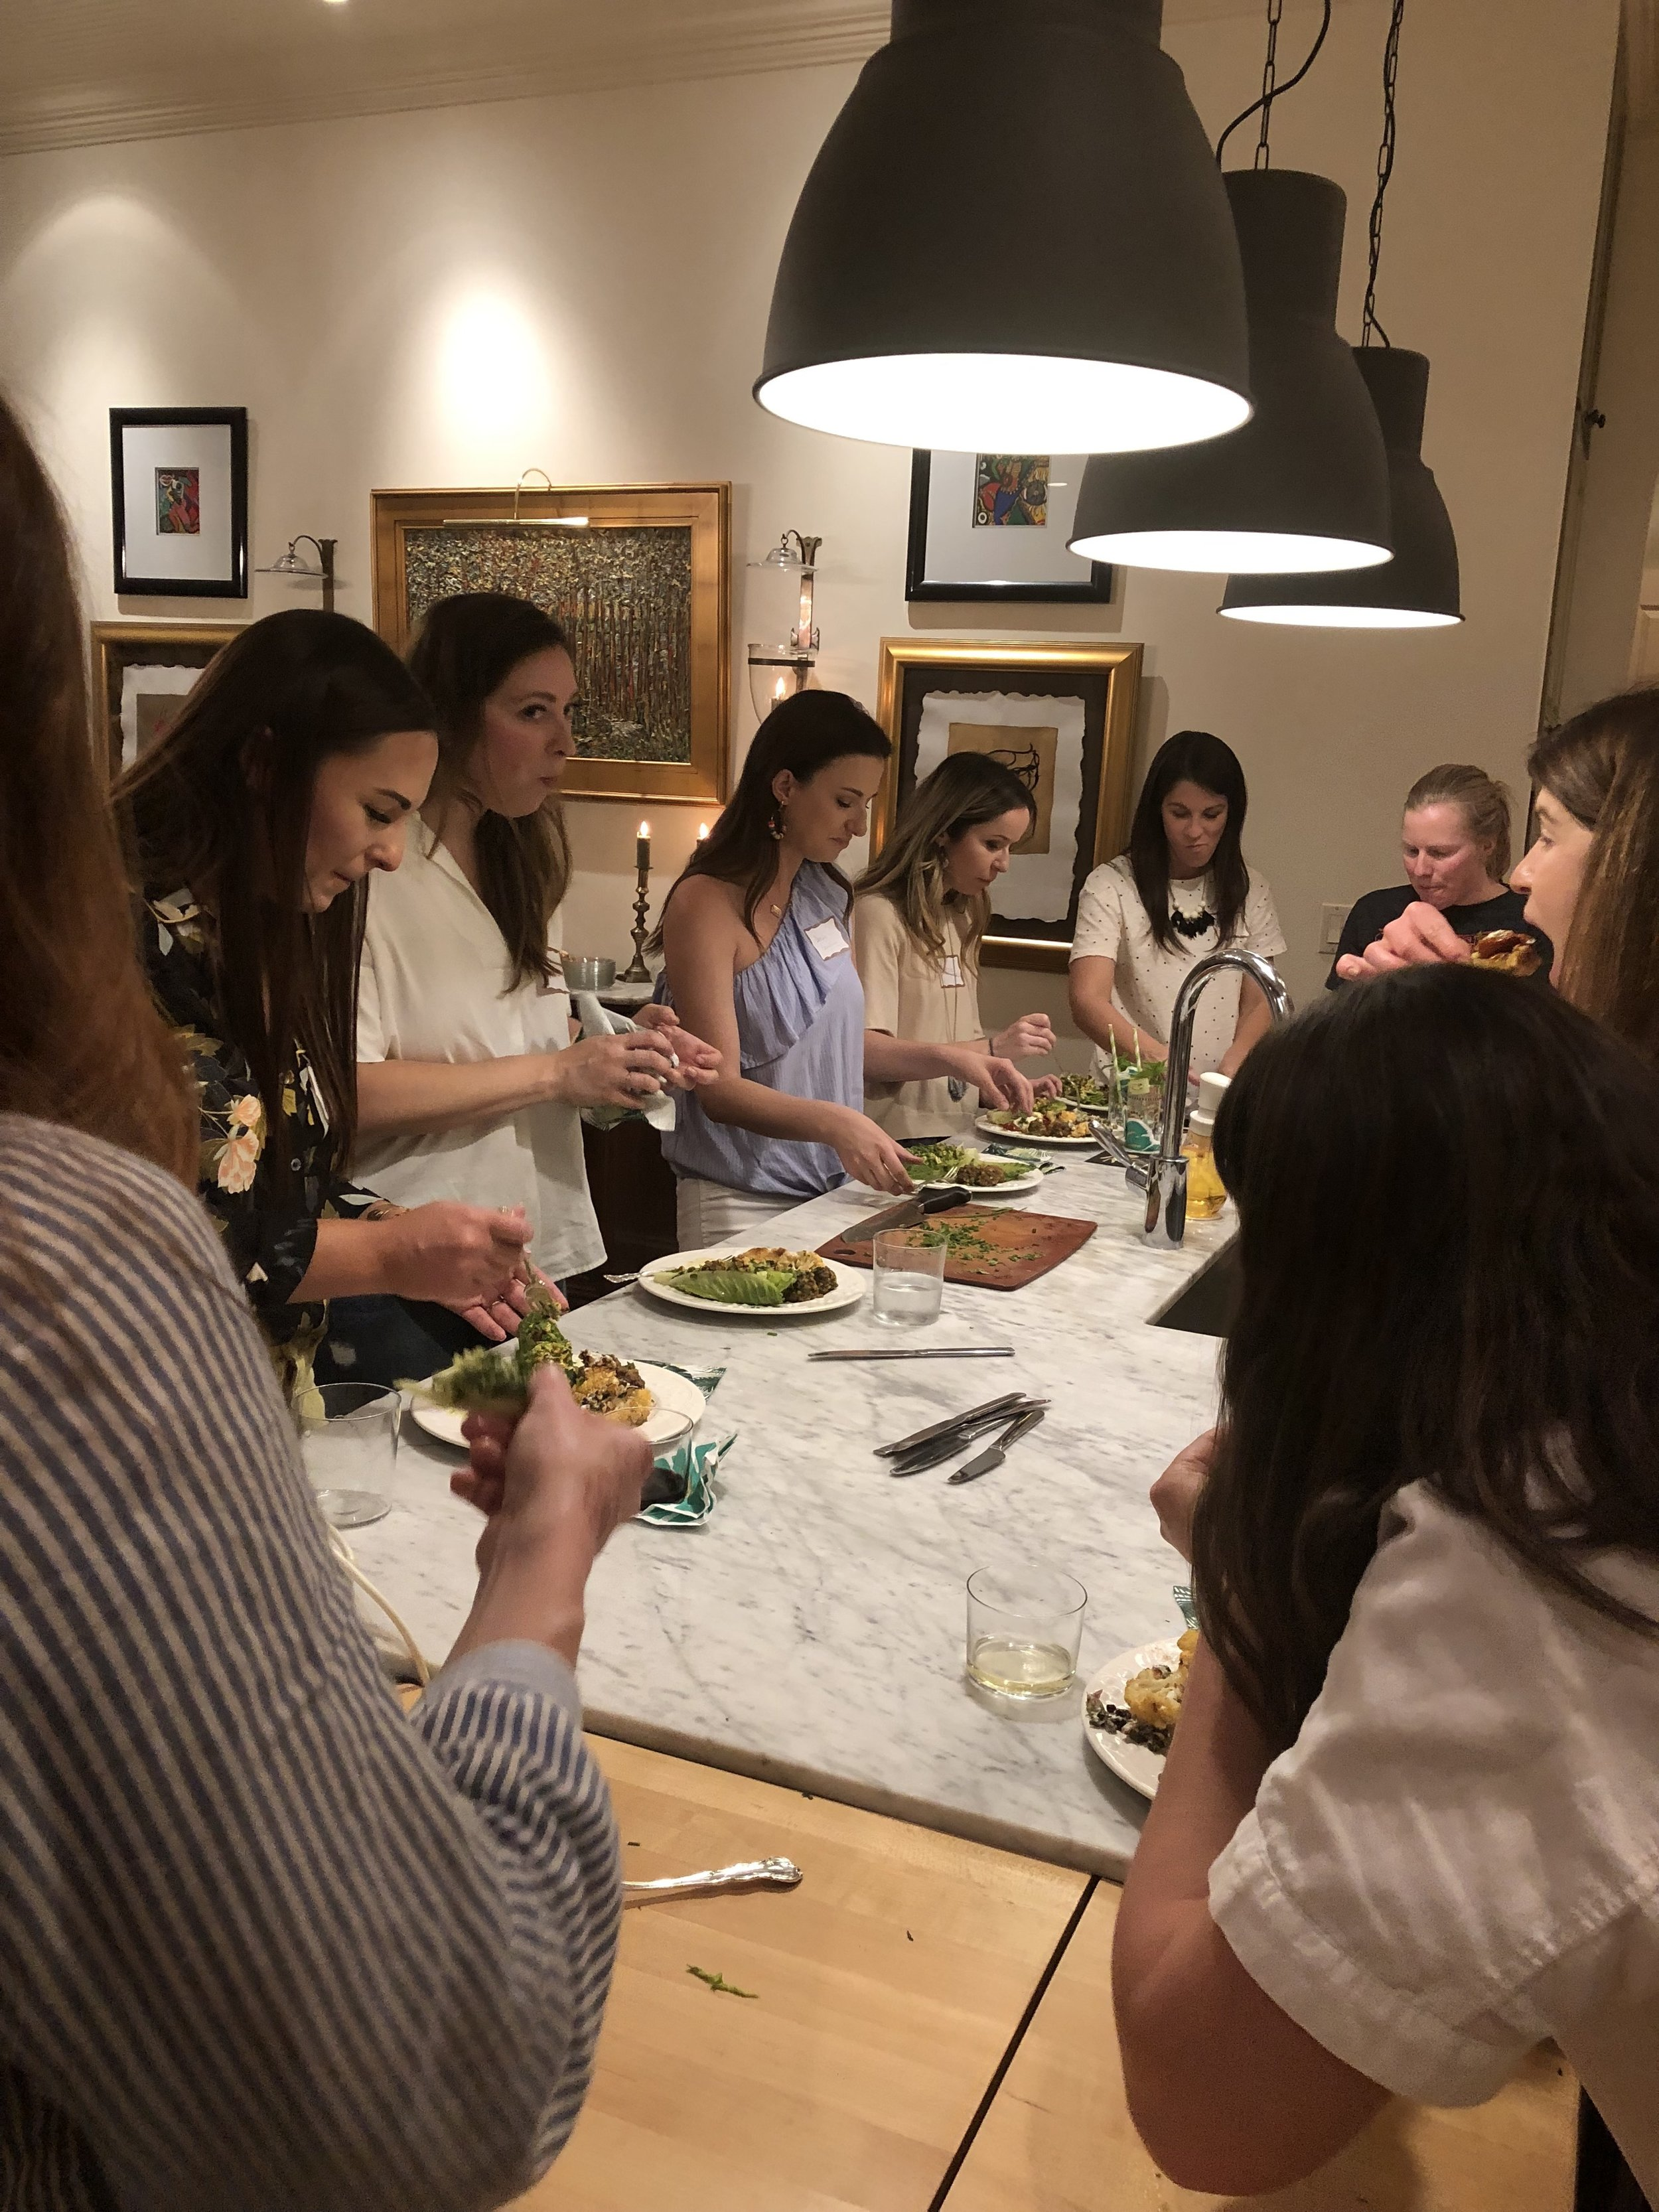 We gather and eat around the kitchen table -